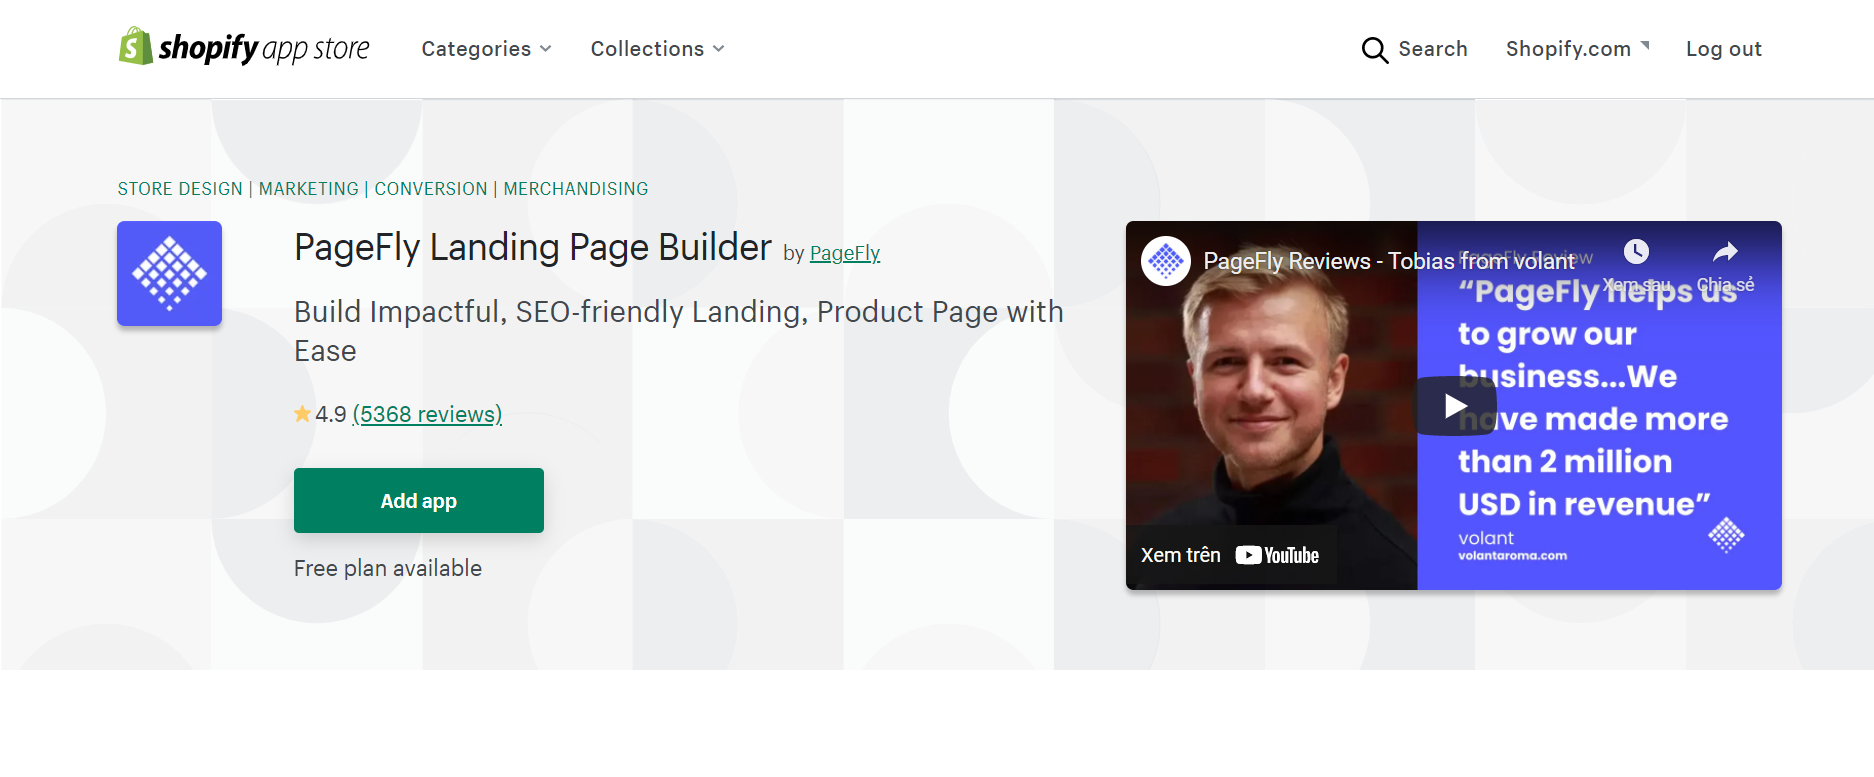 pagefly landing page builder